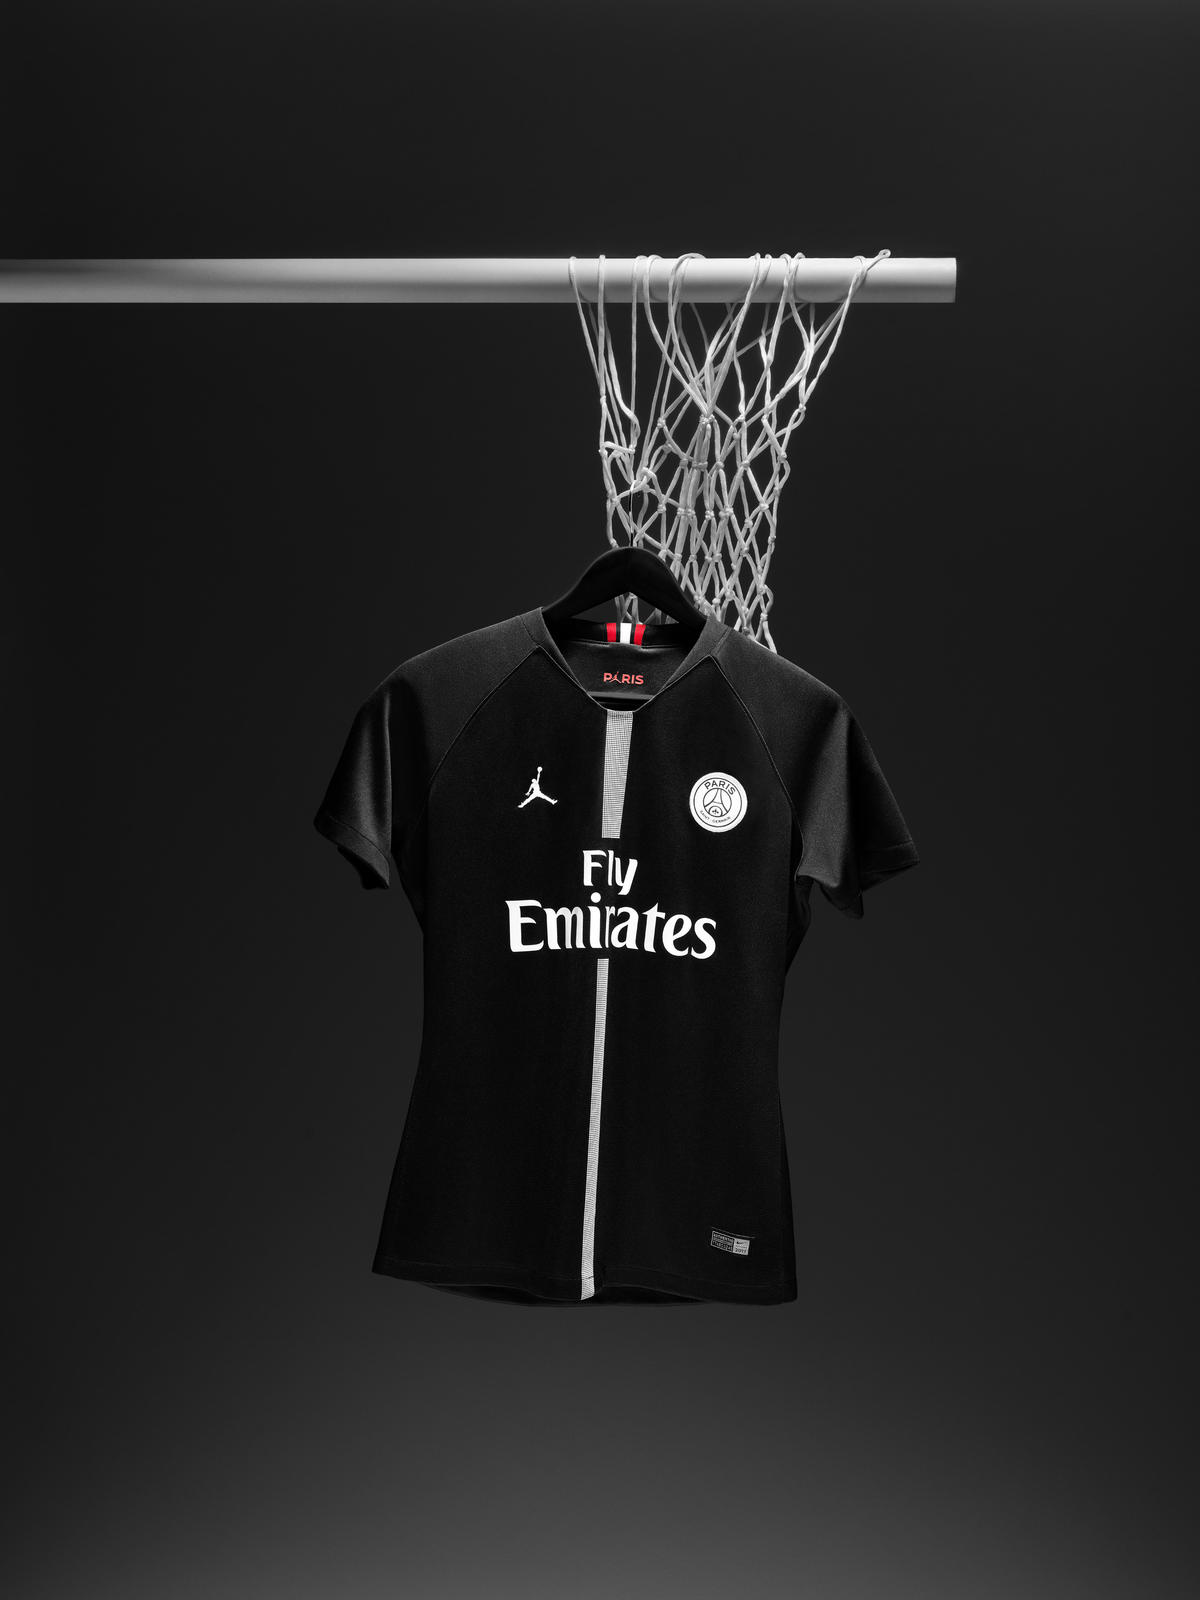 watch d4dcc 8f055 PSG unveil their new Michael Jordan themed jersey, and it is ...